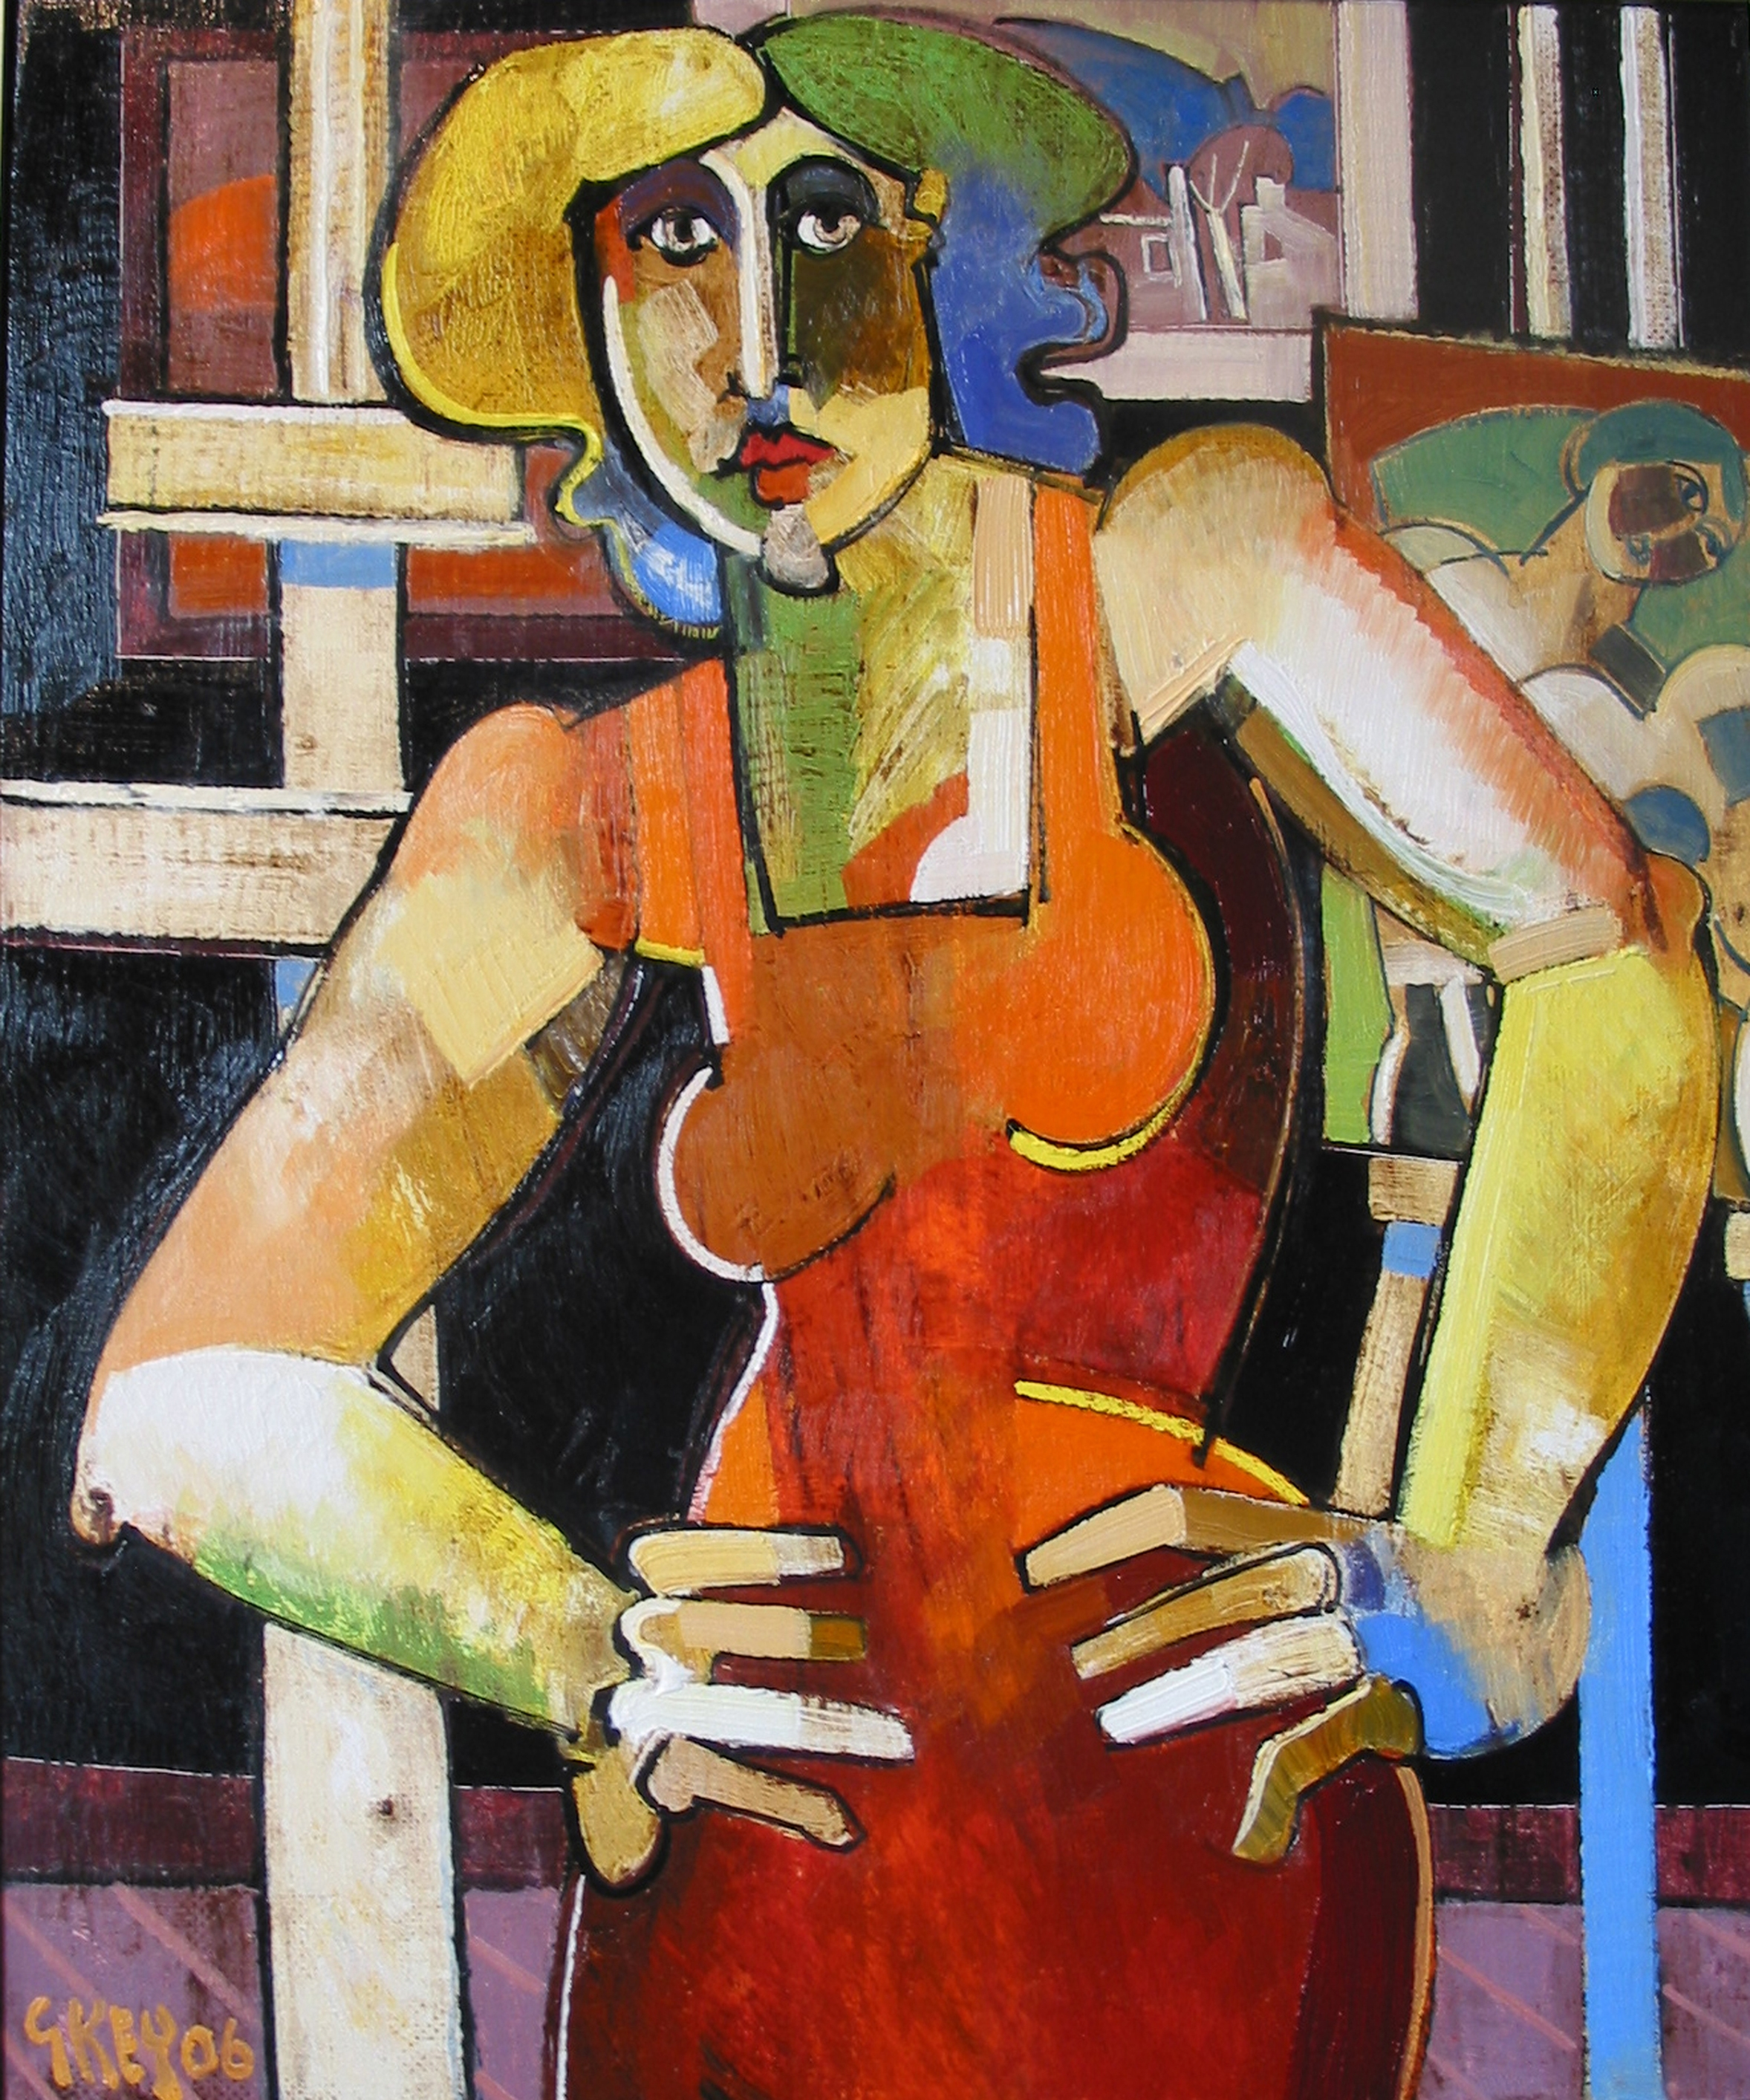 studio figure, oil 2006